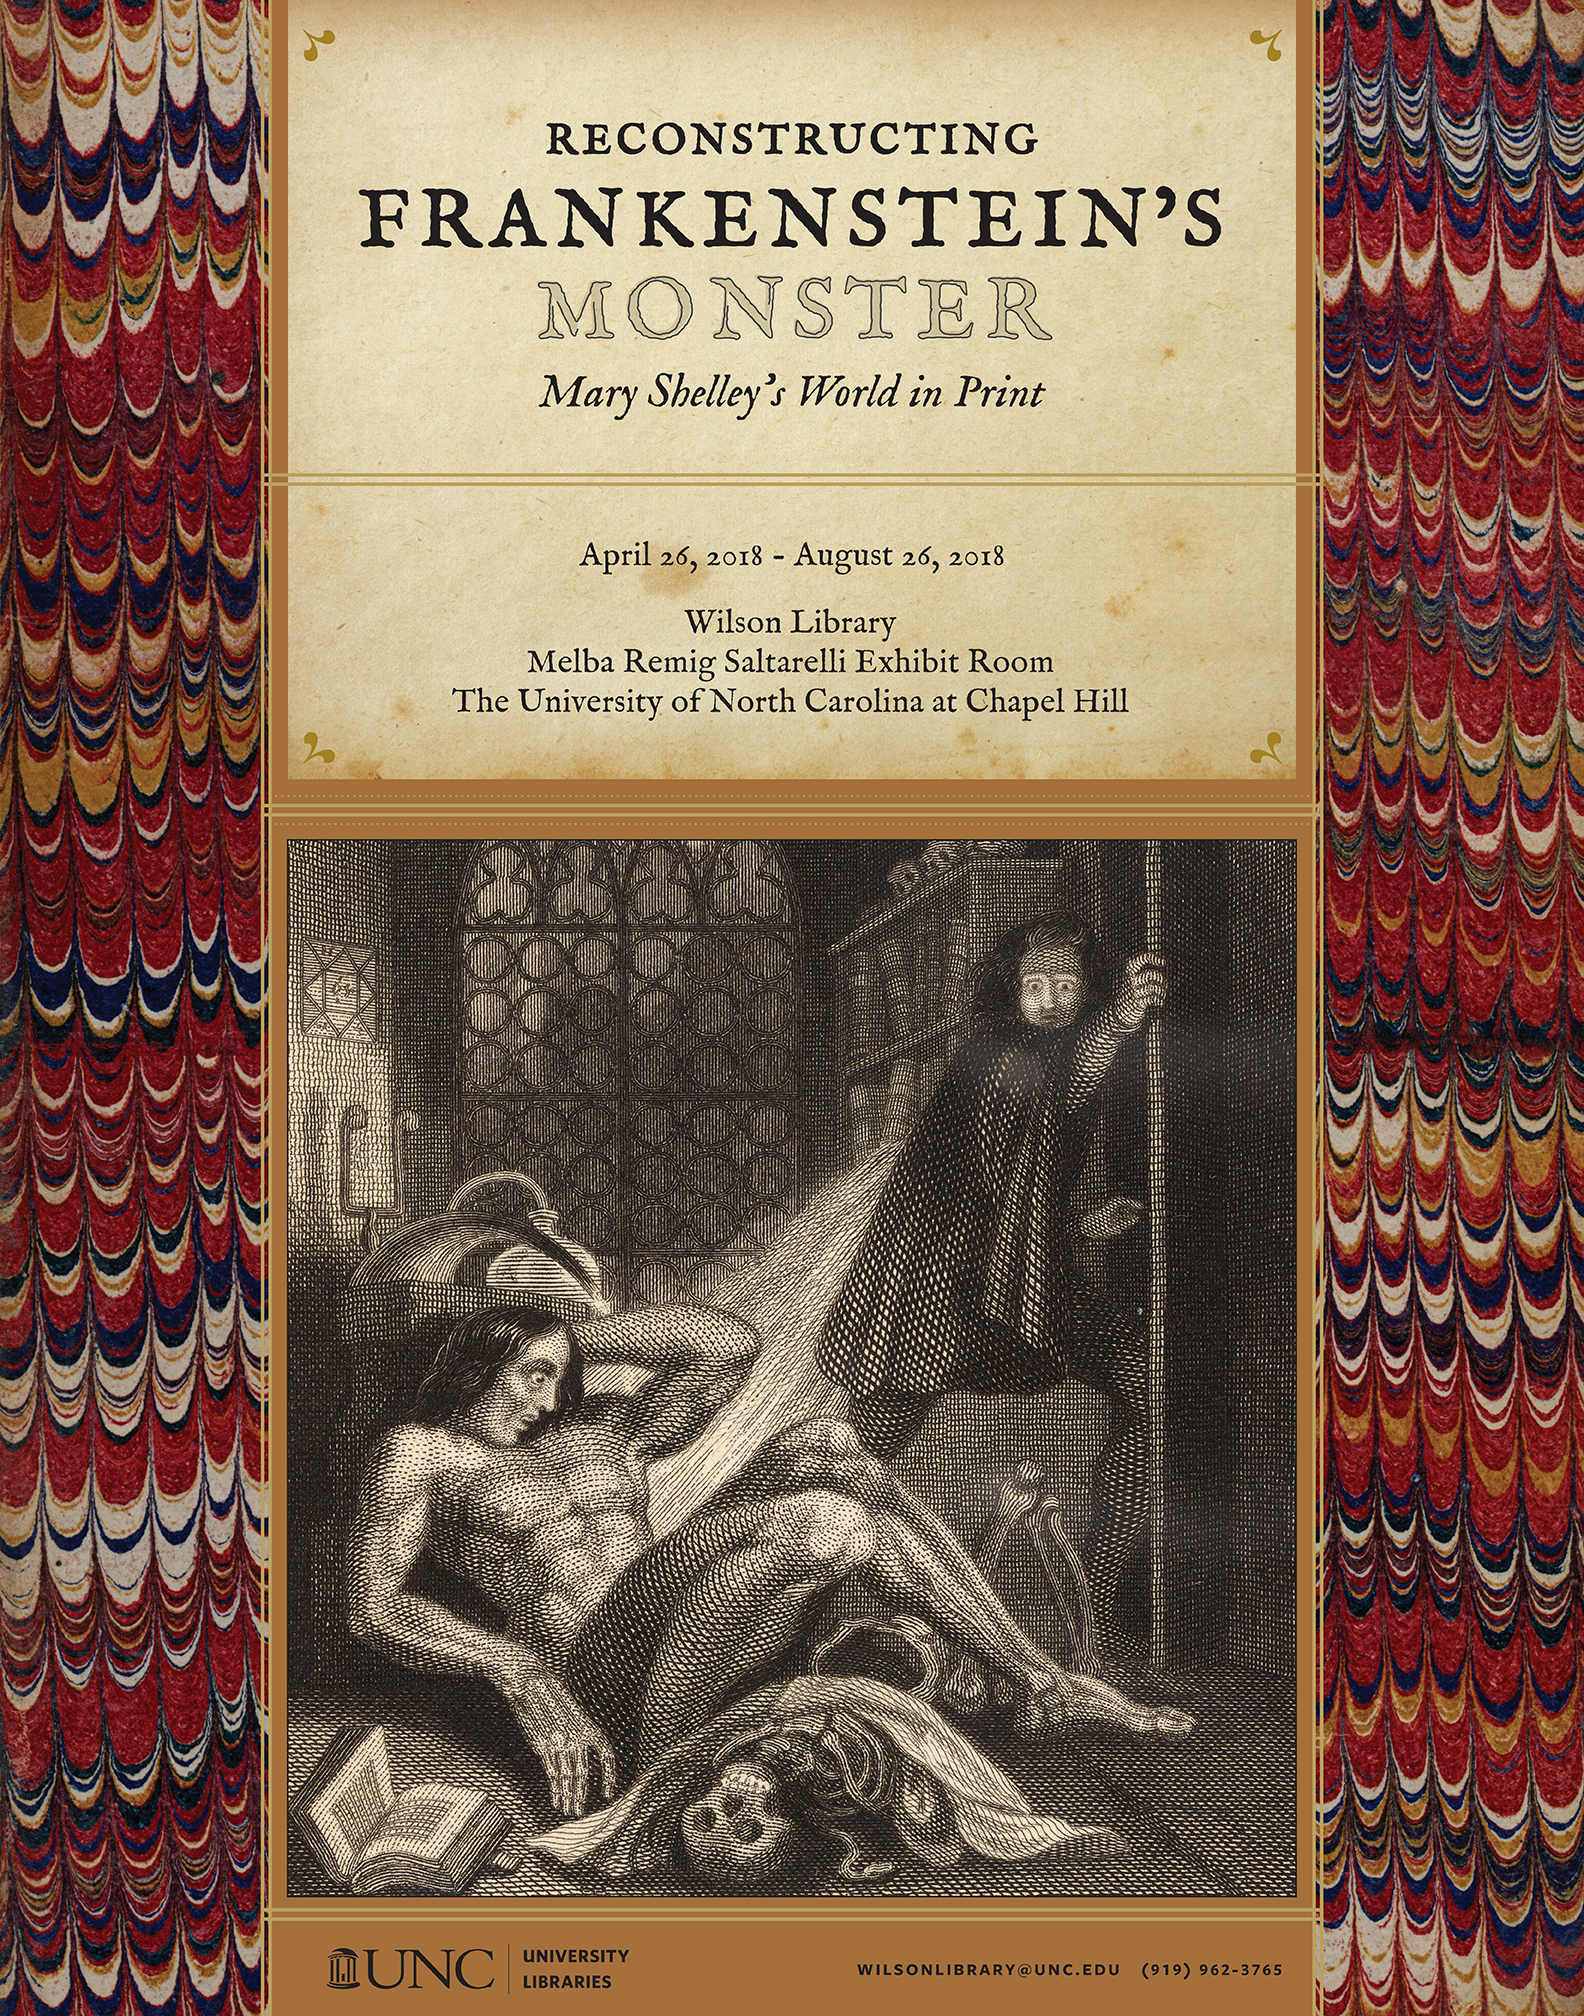 The poster features the first illustration ever drawn of Frankenstein's monster, taken from the frontispiece of the second edition of Frankenstein published in 1831. In the image, Frankenstein is fleeing in horror from his study as his monster awakes in the foreground. He is shown as a large muscular man with long black hair sprawled on the floor surrounded by skulls, bones, and books. The monster has a stricken look on his face.